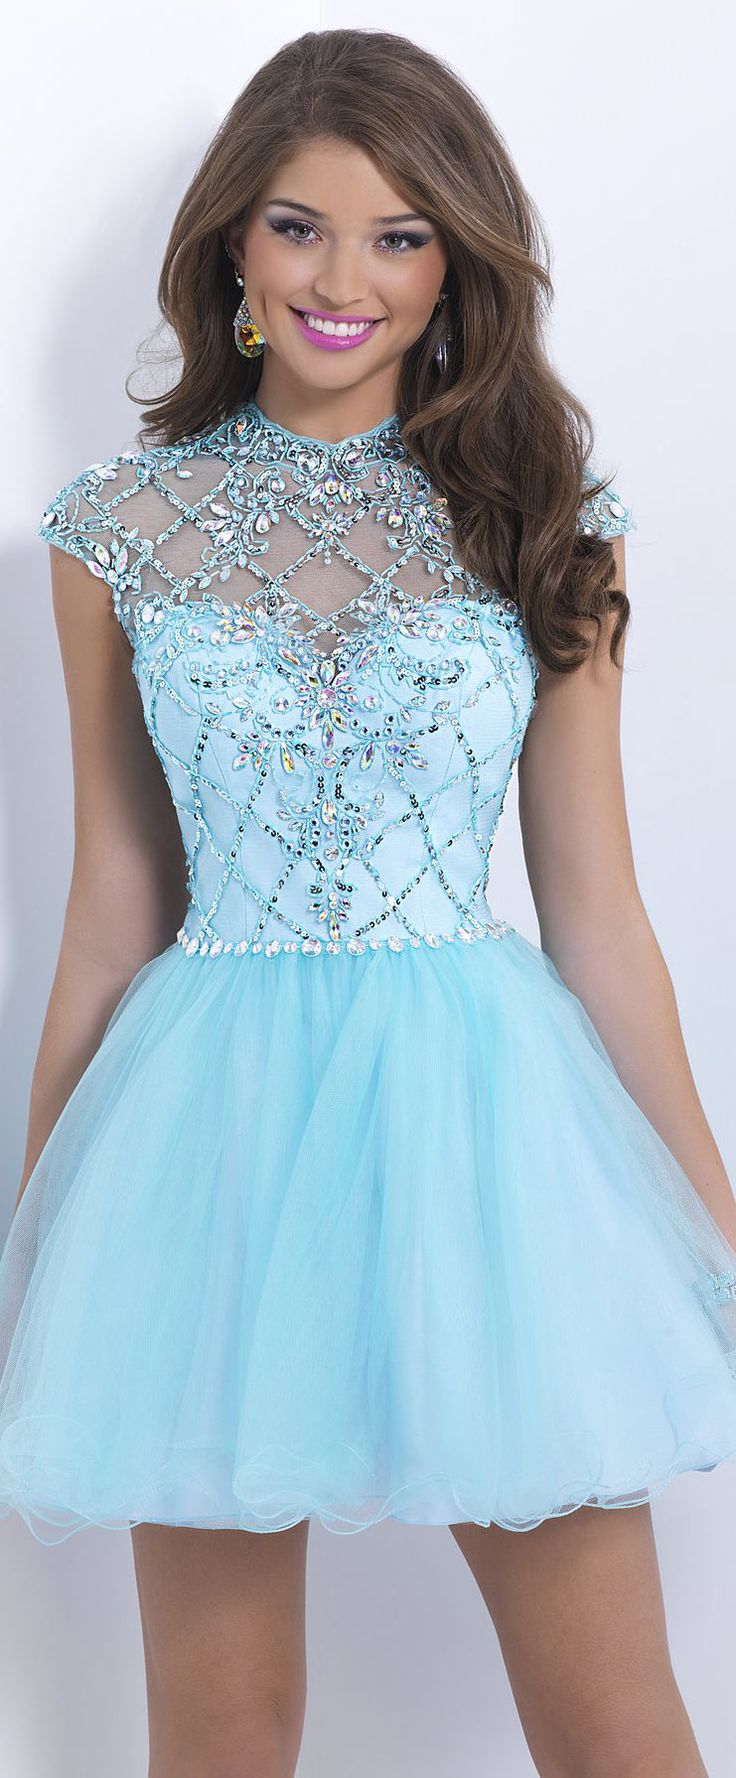 Robe cocktail bleu tutu orné de strass